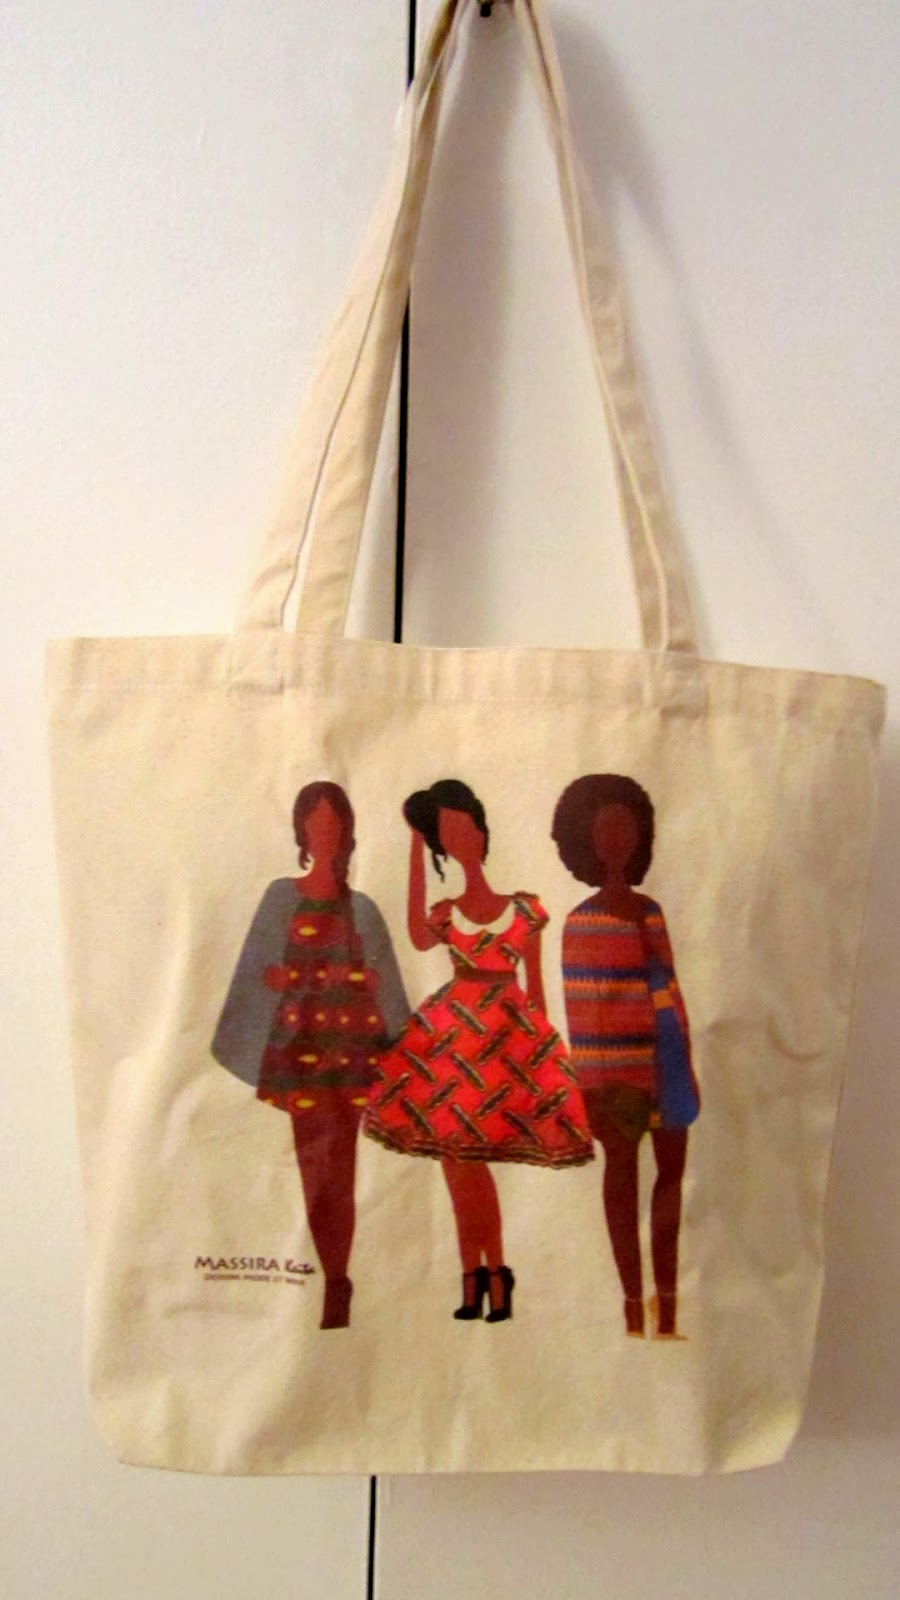 Massira Keita - Tote Bag Wax